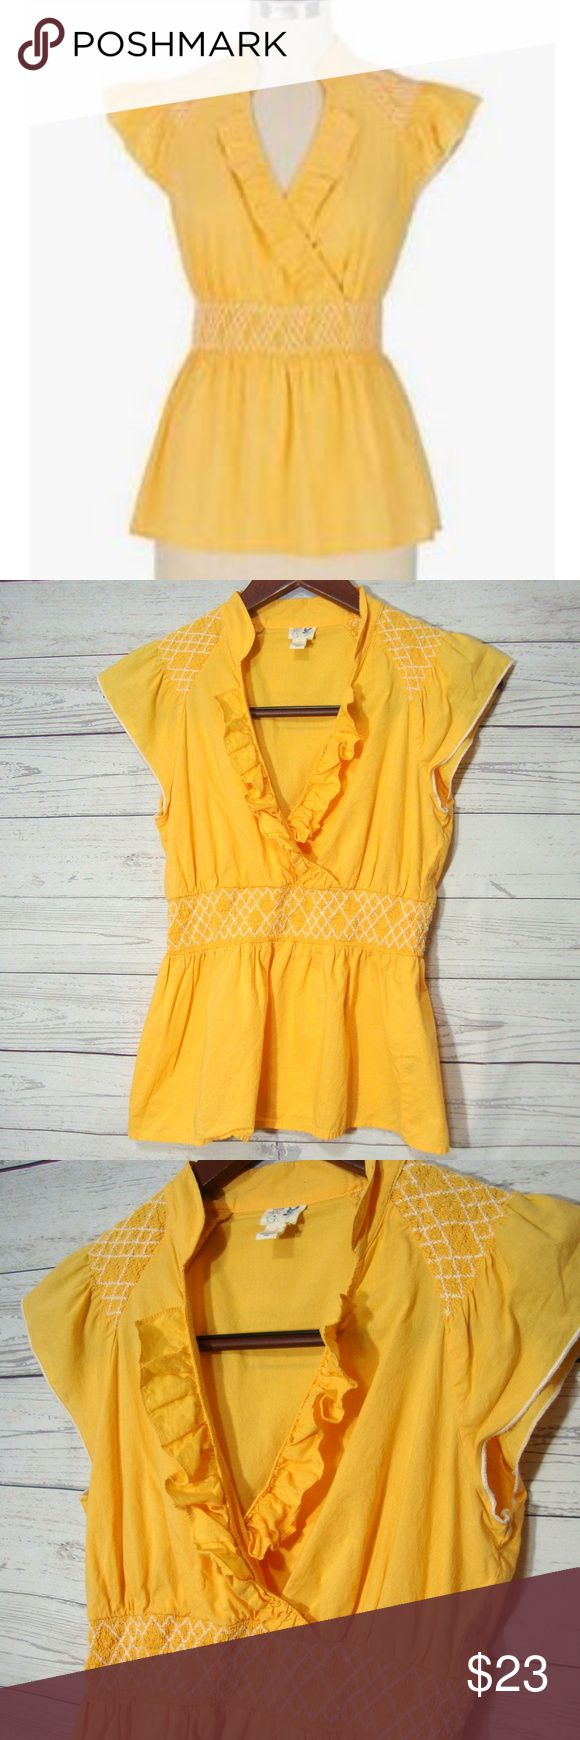 Edme & Esyllte Smocked Cotton Ruffle Top From Anthropologie's Edme &Esyllte line  Size 4  Laying flat it measures: underarm to underarm - 17 inches across from back of neck to bottom - 22 inches  Color: yellowish orange  Gently used  From a smoke free and pet friendly home Edme & Esyllte Orange Smocked Cotton Flutter Top 4 Ruffle Shirt Anthropologie Anthropologie Tops Blouses